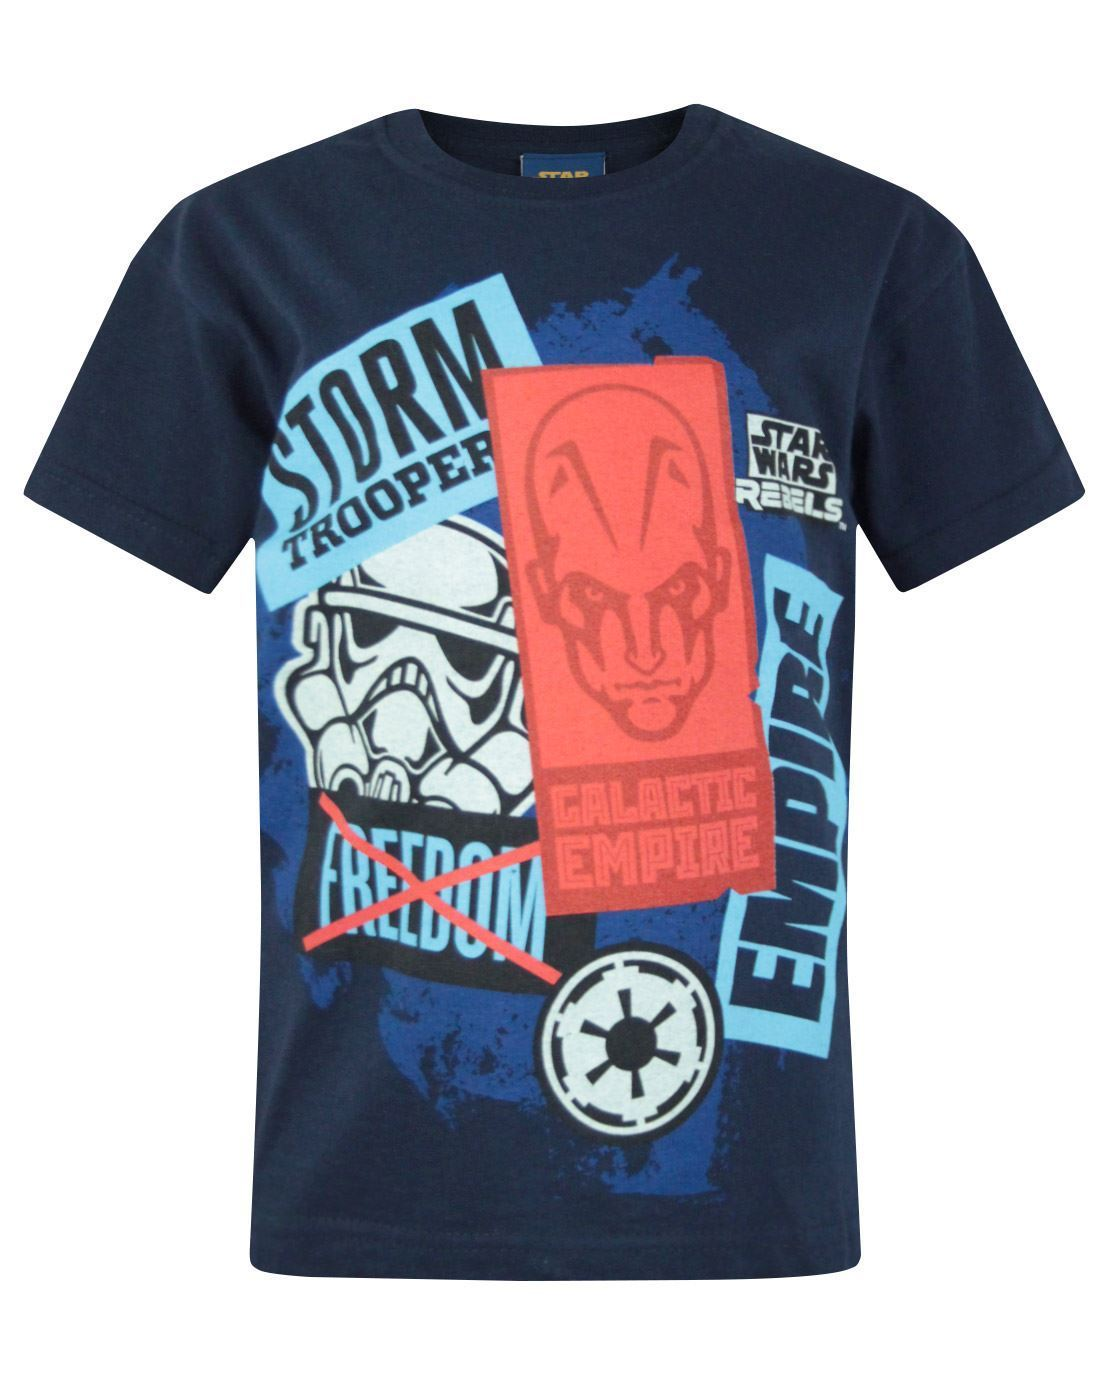 Star Wars Rebels Kids T-Shirt